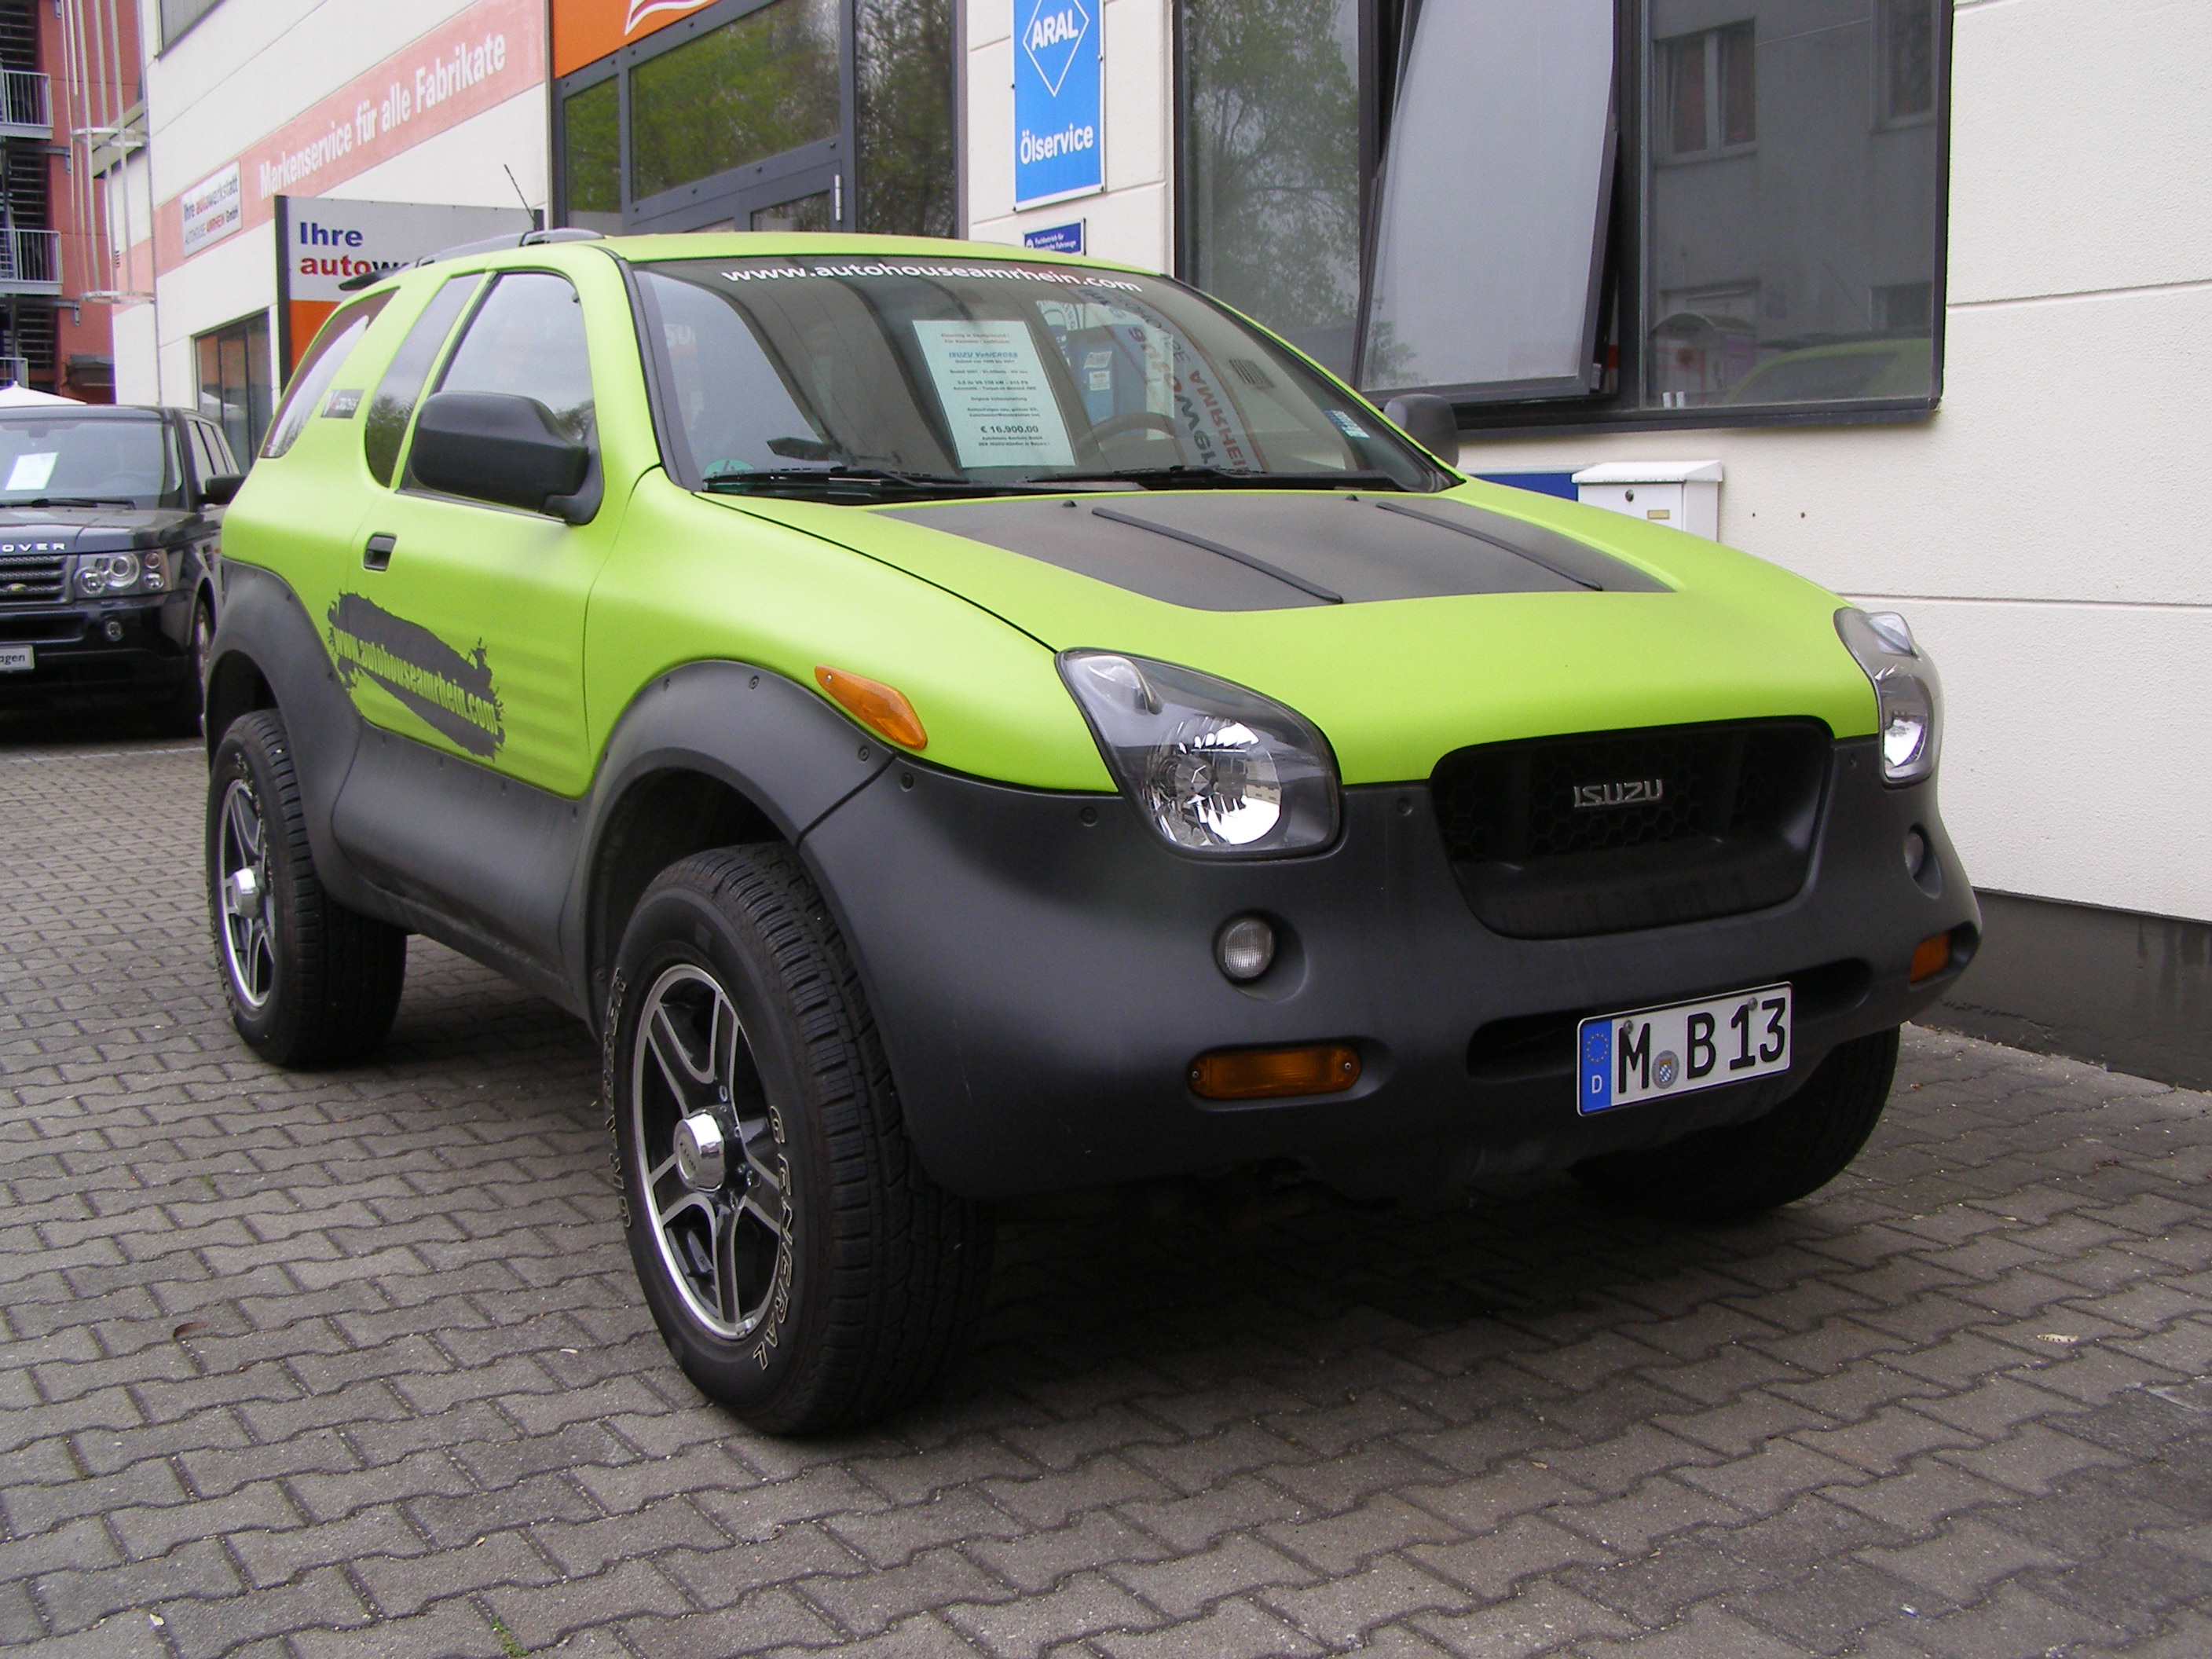 isuzu vehicross 1 autohouse amrhein gmbh. Black Bedroom Furniture Sets. Home Design Ideas